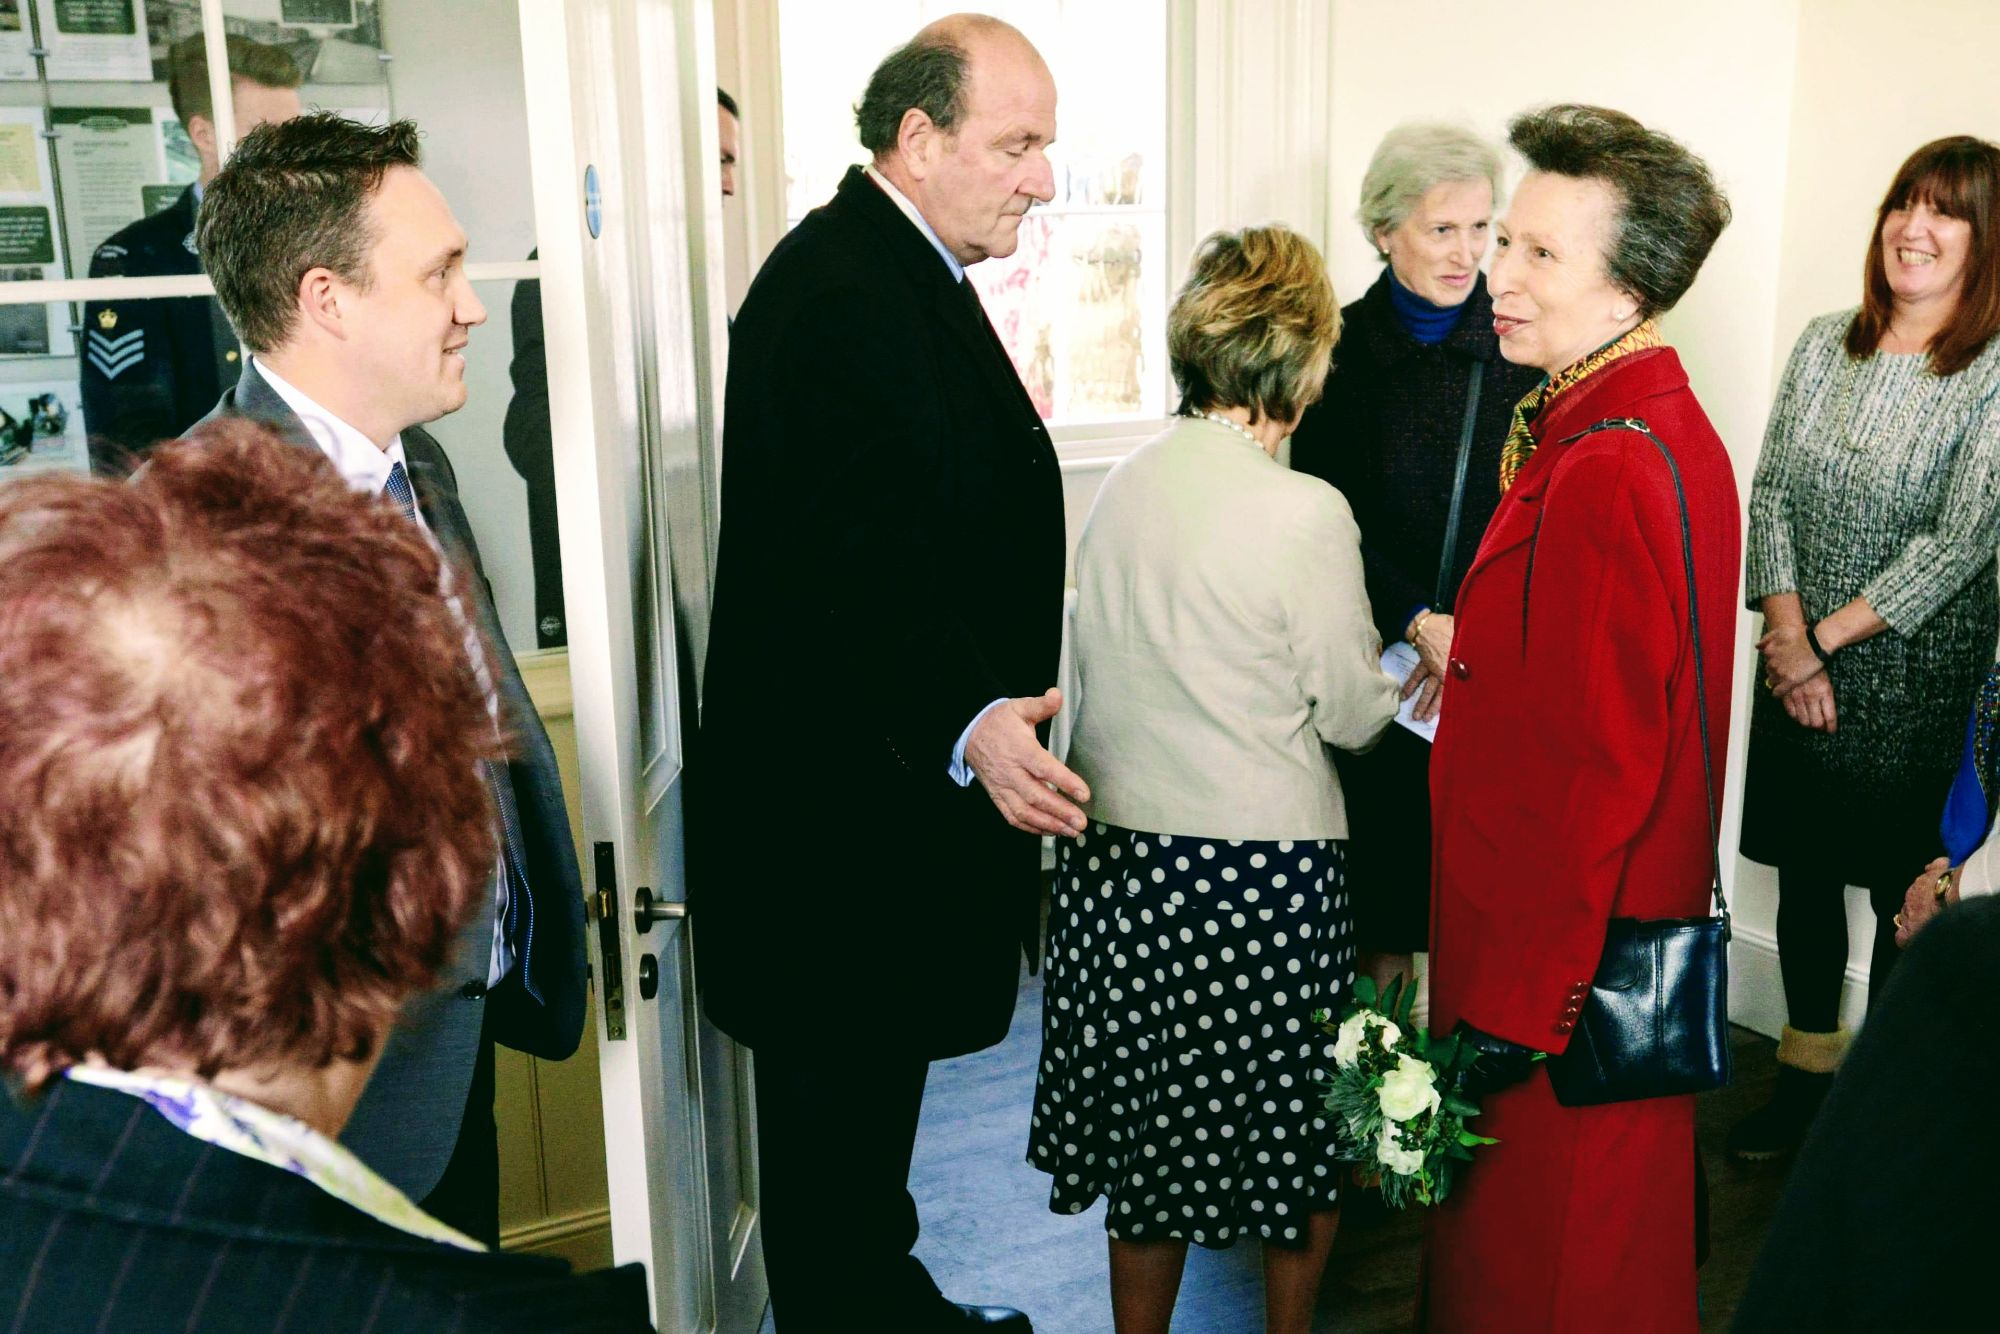 Managing Director Oliver Fytche-Taylor meets HRH Princess Anne at the newly renovated Market Rasen Railway Station